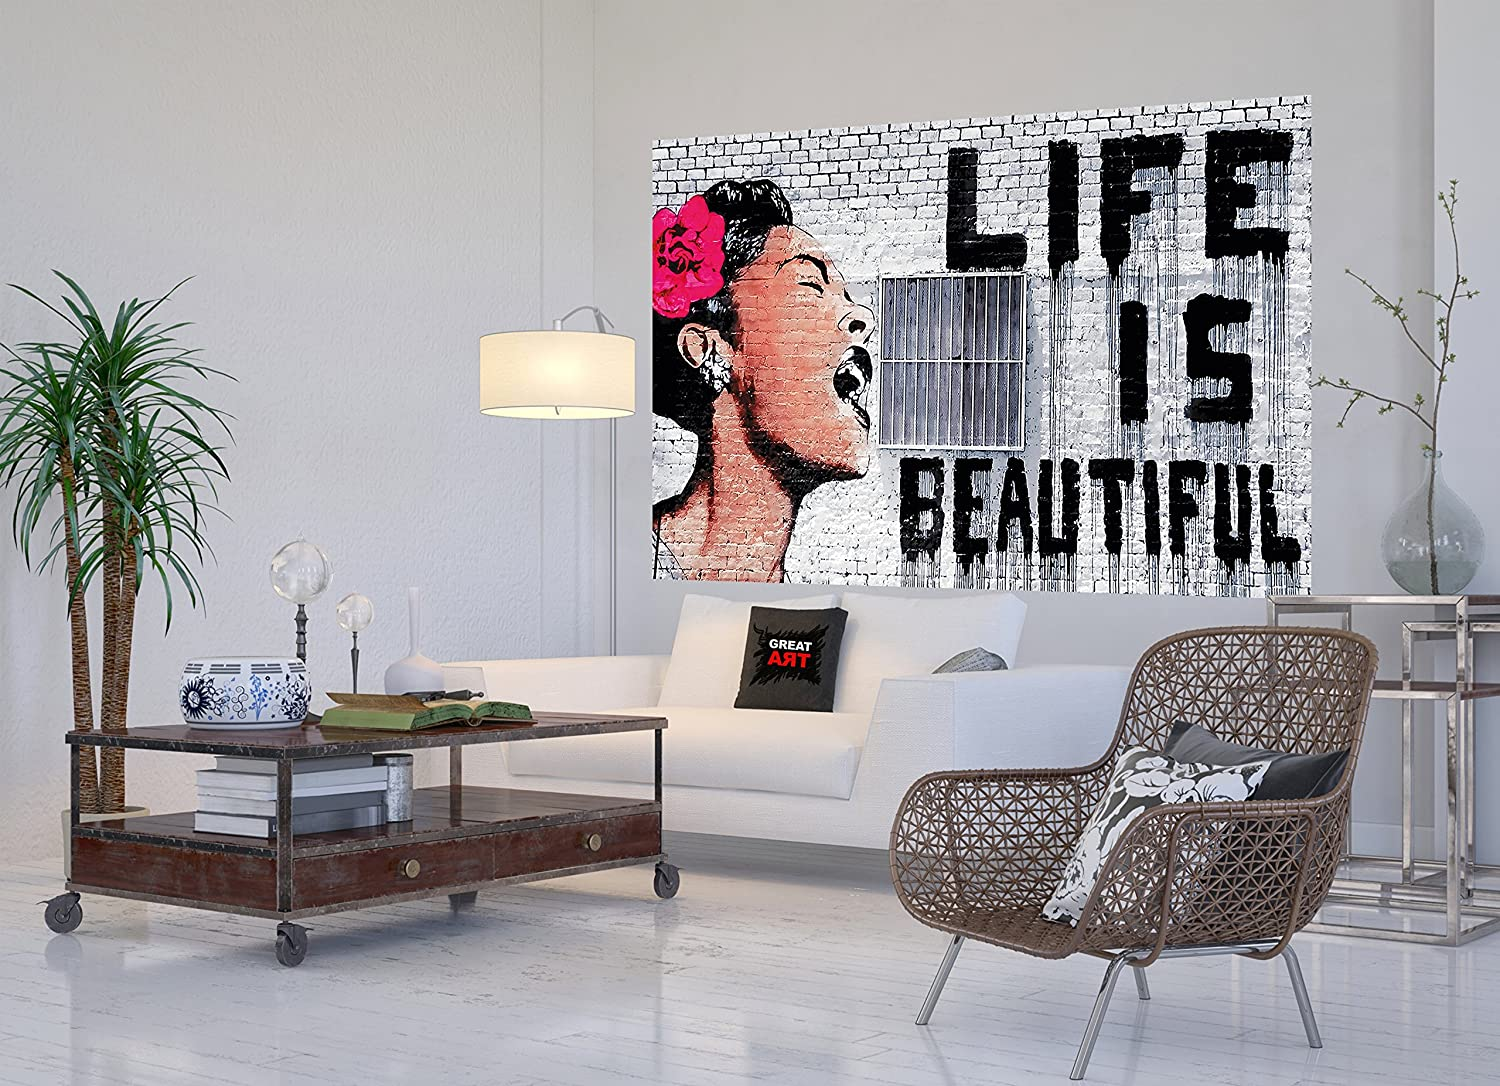 Life is beautiful Wall paper - Life is beautiful mural Banksy Banksy Street-art wall decoration by Great Art 82.7 Inch x 55 Inch